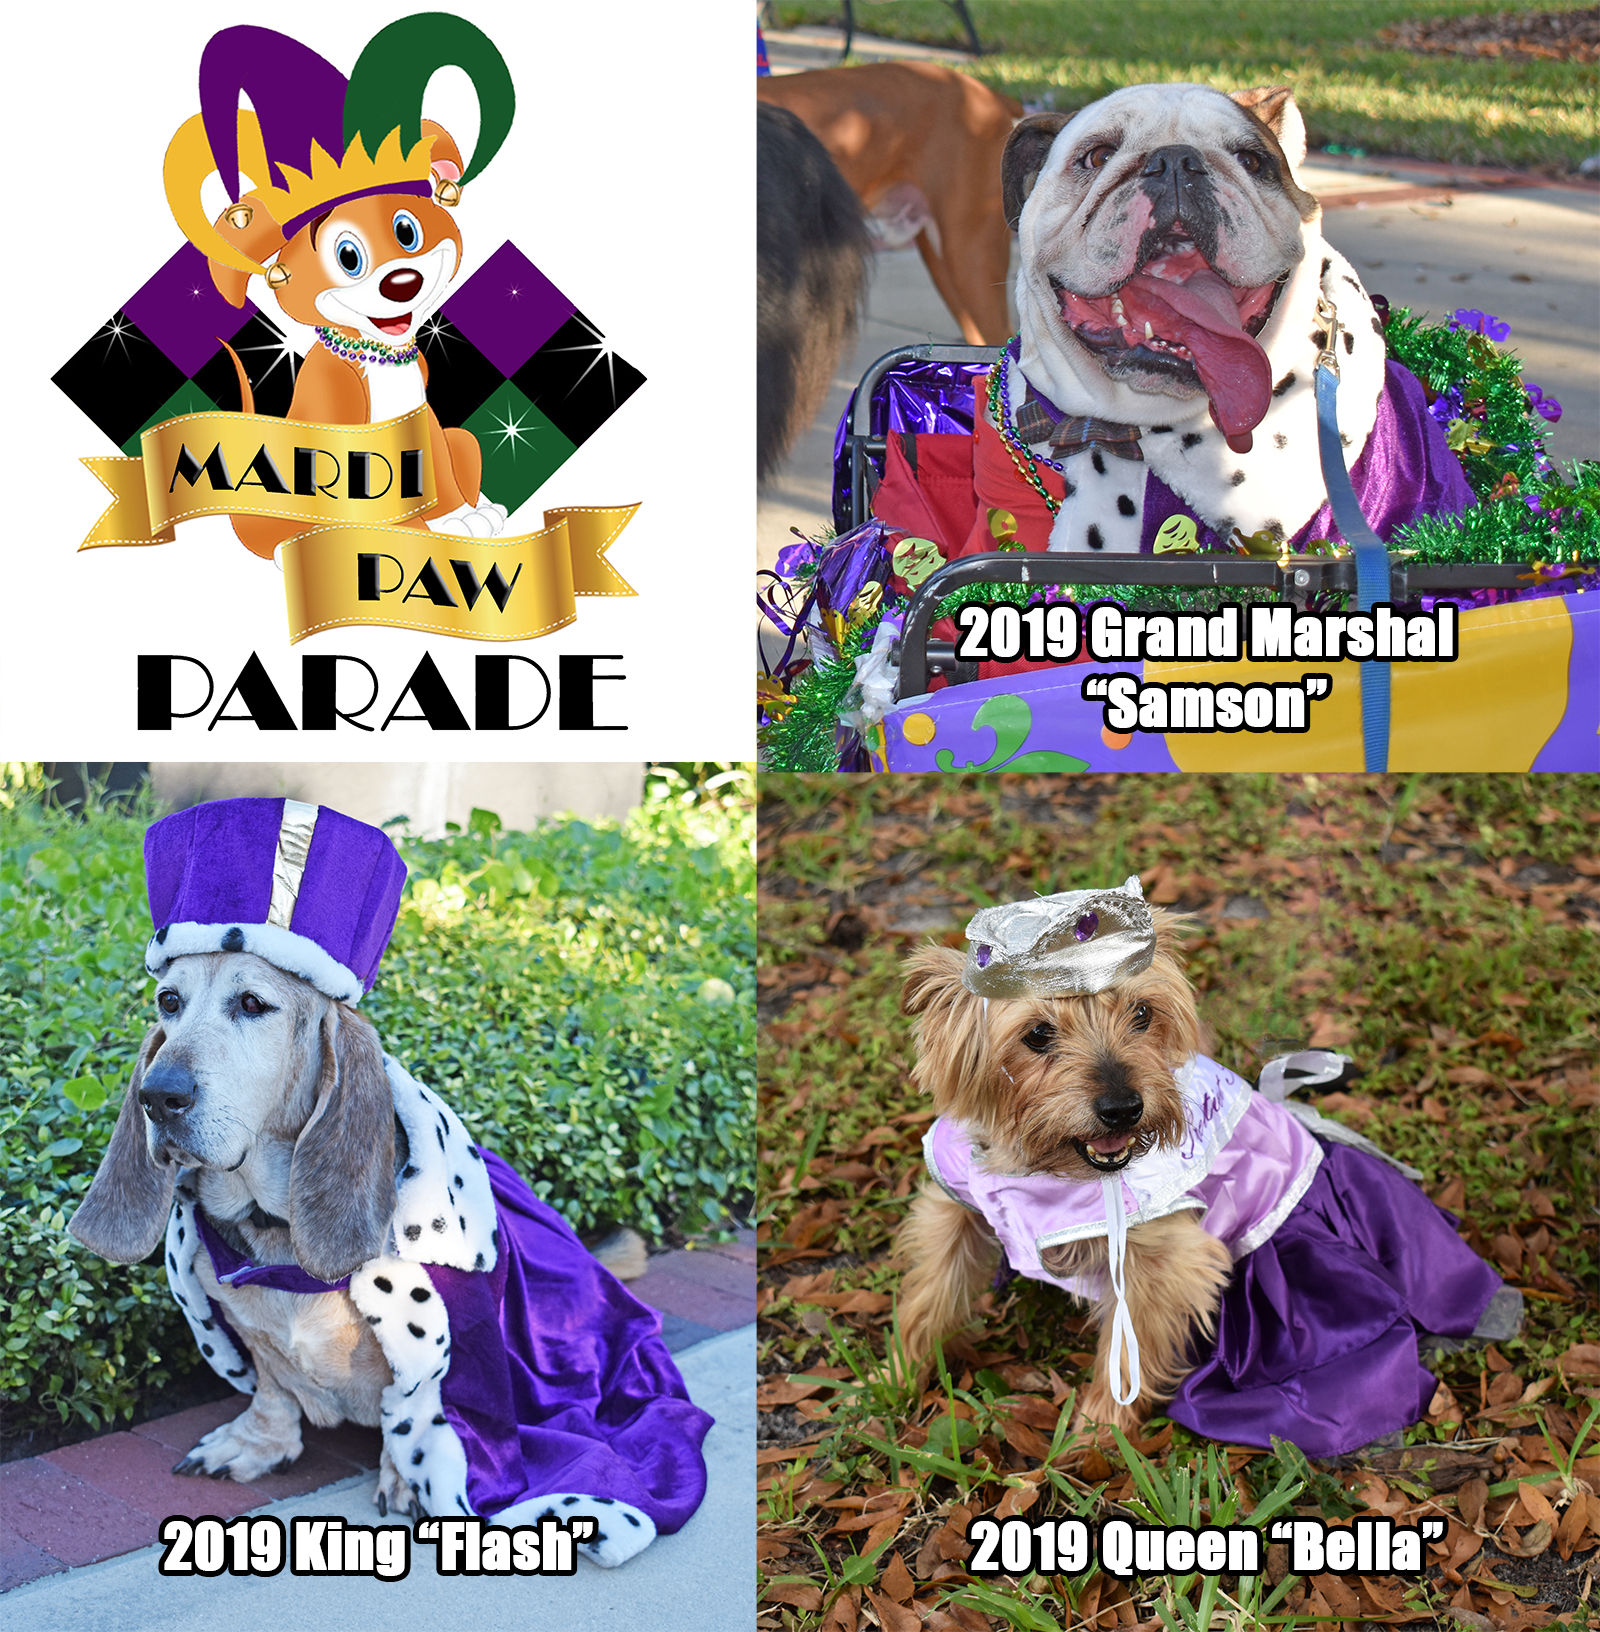 Dogs dressed up at Mardi Paw